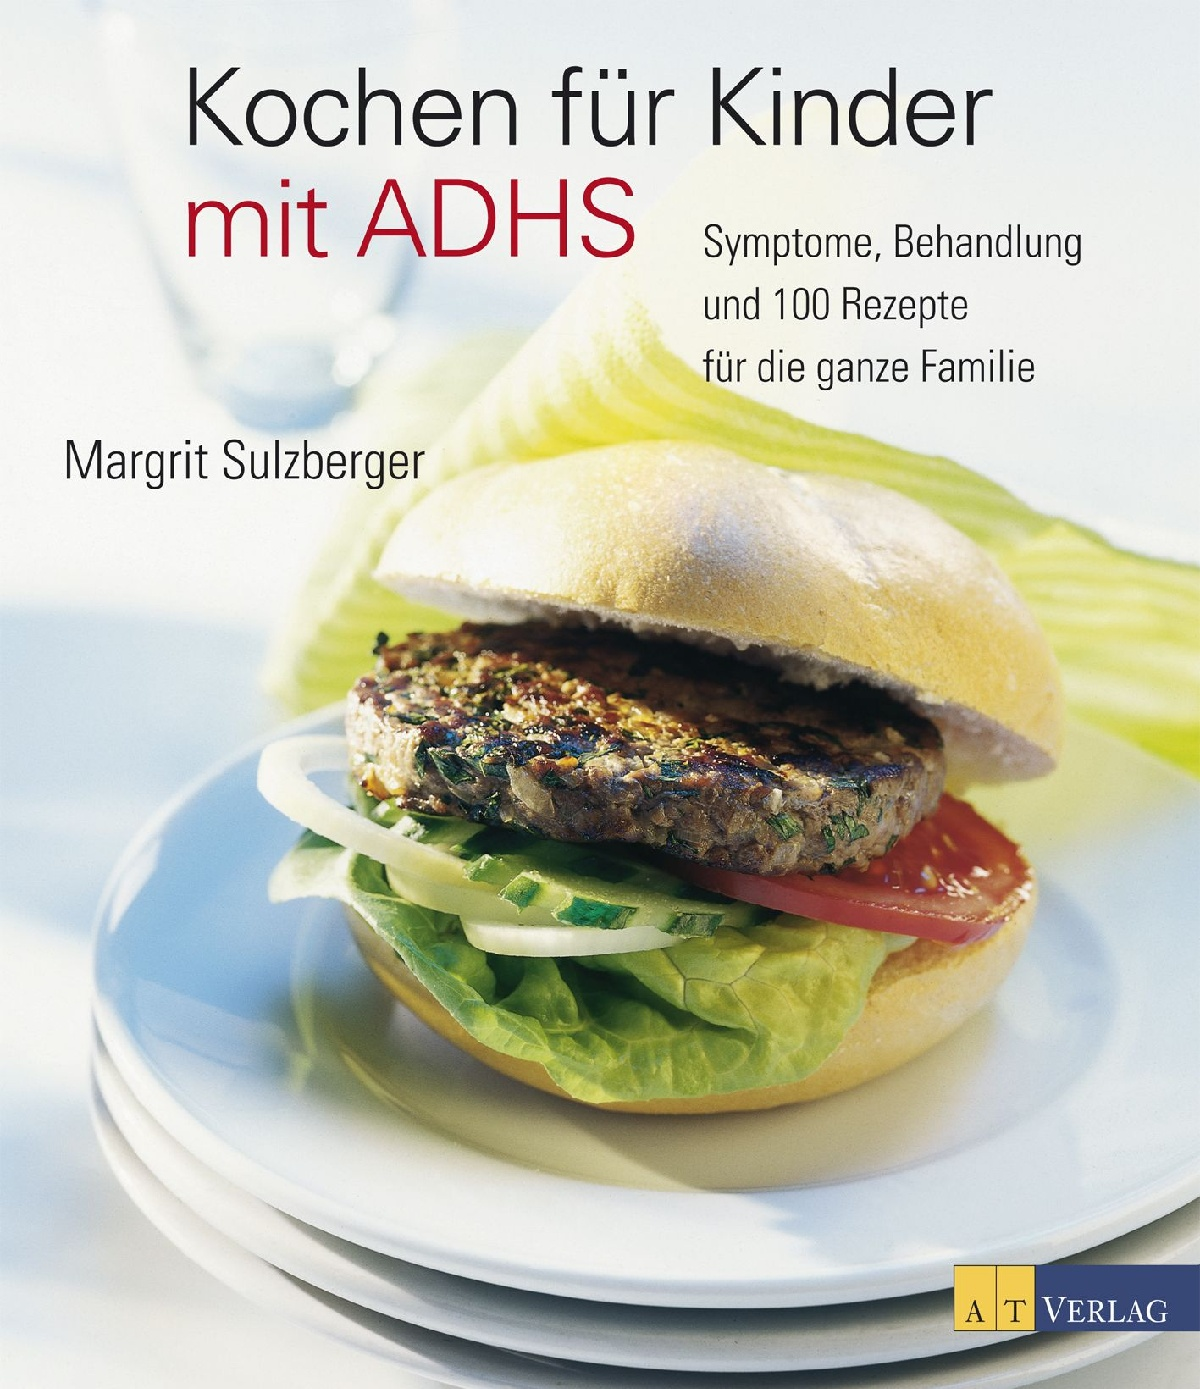 buch kochen f r kinder mit adhs von margrit sulzberger at verlag. Black Bedroom Furniture Sets. Home Design Ideas